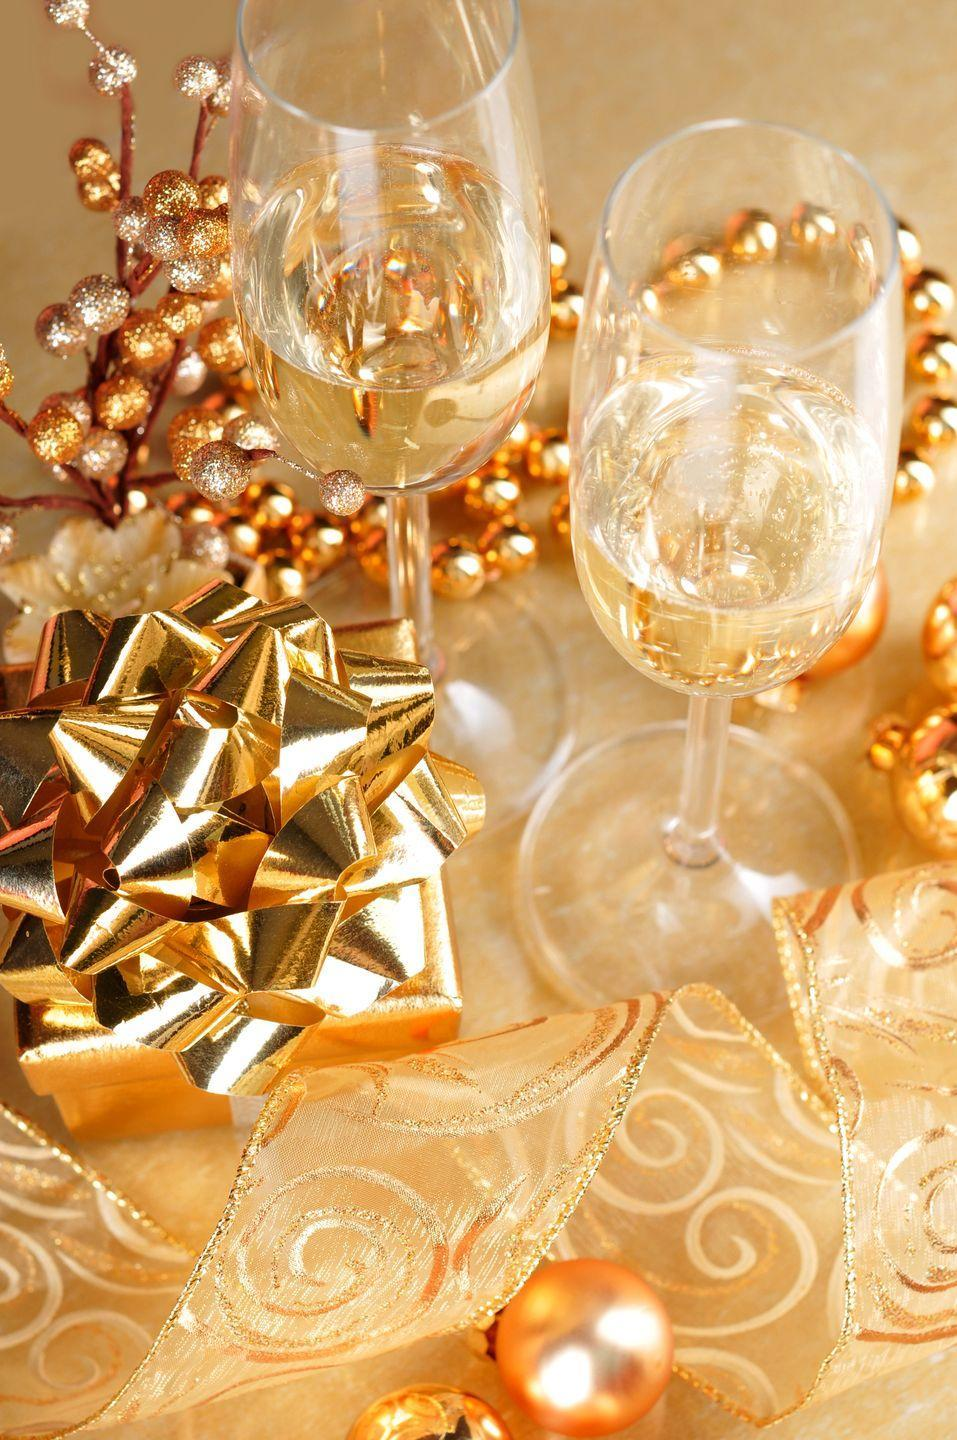 """<p>Toast the arrival of 2021 with the best part of the New Year's holiday: the champagne! Deck out your house with gold-themed everything, like these <a href=""""https://www.amazon.com/GOER-711176740583-Foil-Fringe-Curtains/dp/B01J9FWFC2/?creativeASIN=B01J9FWFC2&linkCode=w61&imprToken=Ke3w.YliaKFz5yG3okk5PA&slotNum=11&tag=syn-yahoo-20&ascsubtag=%5Bartid%7C10055.g.30105731%5Bsrc%7Cyahoo-us"""" rel=""""nofollow noopener"""" target=""""_blank"""" data-ylk=""""slk:gold fringe curtains"""" class=""""link rapid-noclick-resp"""">gold fringe curtains</a> and <a href=""""https://www.amazon.com/XmasExp-Balloon-Garland-Balloons-Wedding/dp/B07RXYMN9C/ref=sr_1_5?keywords=champagne+bottle+balloon&qid=1575389712&s=home-garden&sr=1-5&tag=syn-yahoo-20&ascsubtag=%5Bartid%7C10055.g.30105731%5Bsrc%7Cyahoo-us"""" rel=""""nofollow noopener"""" target=""""_blank"""" data-ylk=""""slk:champagne bottle balloons"""" class=""""link rapid-noclick-resp"""">champagne bottle balloons</a> — and of course, lots and <em>lots</em> of bubbly. You can even feature champagne in other foods, like these delicious <a href=""""https://www.delish.com/cooking/recipe-ideas/recipes/a57361/champagne-cupcakes-recipe/"""" rel=""""nofollow noopener"""" target=""""_blank"""" data-ylk=""""slk:champagne cupcakes"""" class=""""link rapid-noclick-resp"""">champagne cupcakes</a> that are almost too pretty to eat.</p>"""